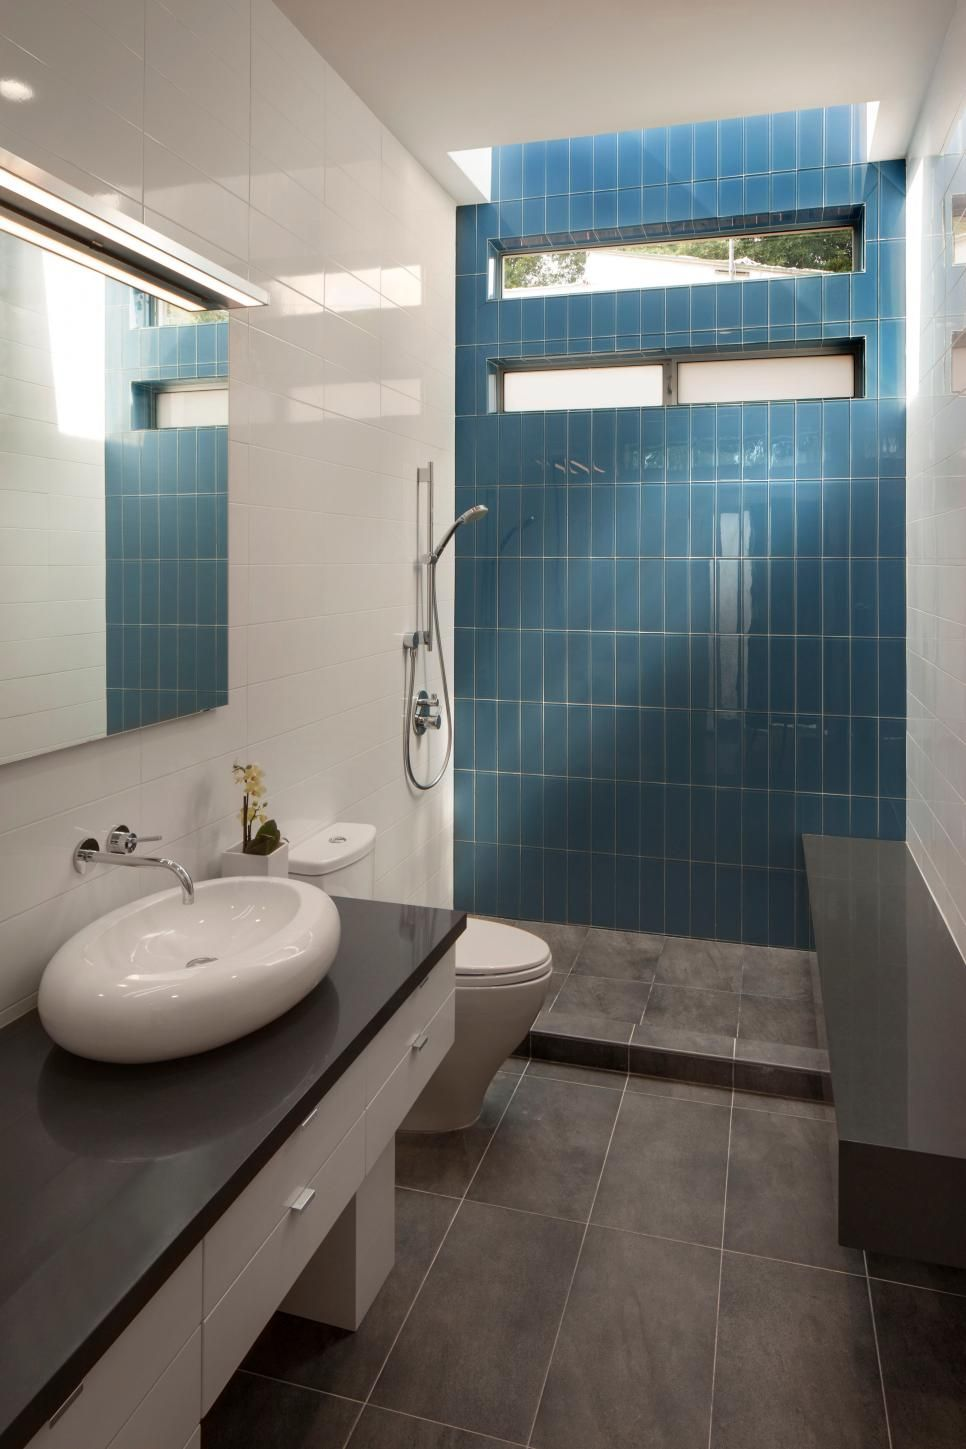 Blue Tile Accent Wall Modern Bathroom With Polished White Wall Tile Gray Marble Floor Tile And Modern White Blue Shower Tile Blue Tile Accent Tile Accent Wall #tile #accent #wall #in #living #room